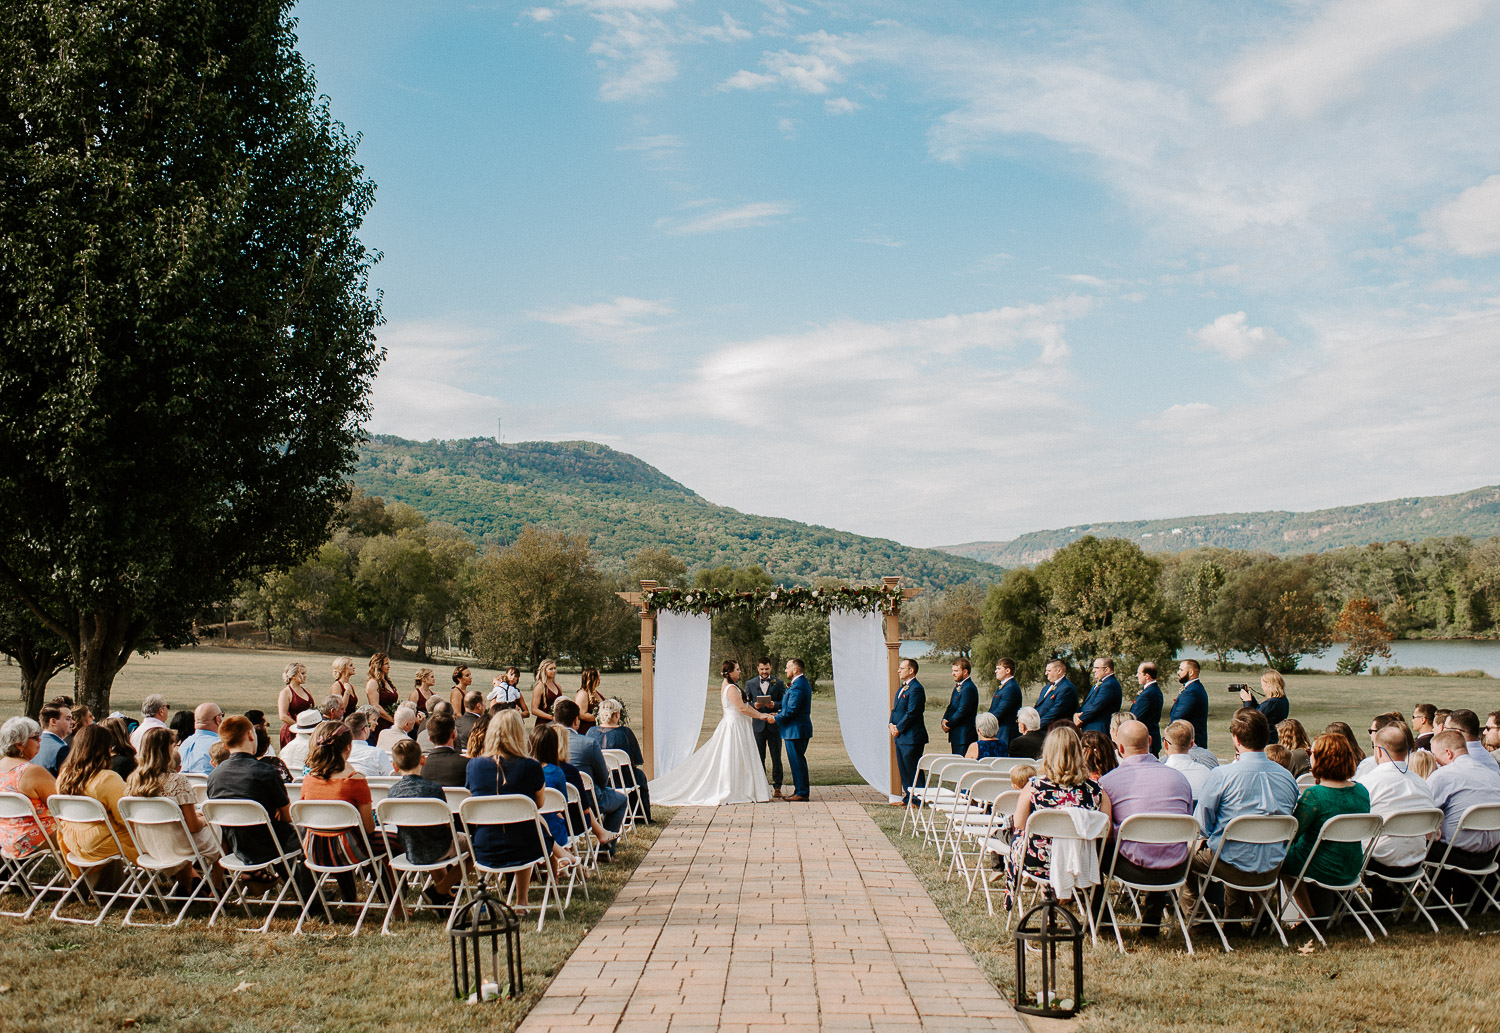 Chattanooga waterfront wedding ceremony